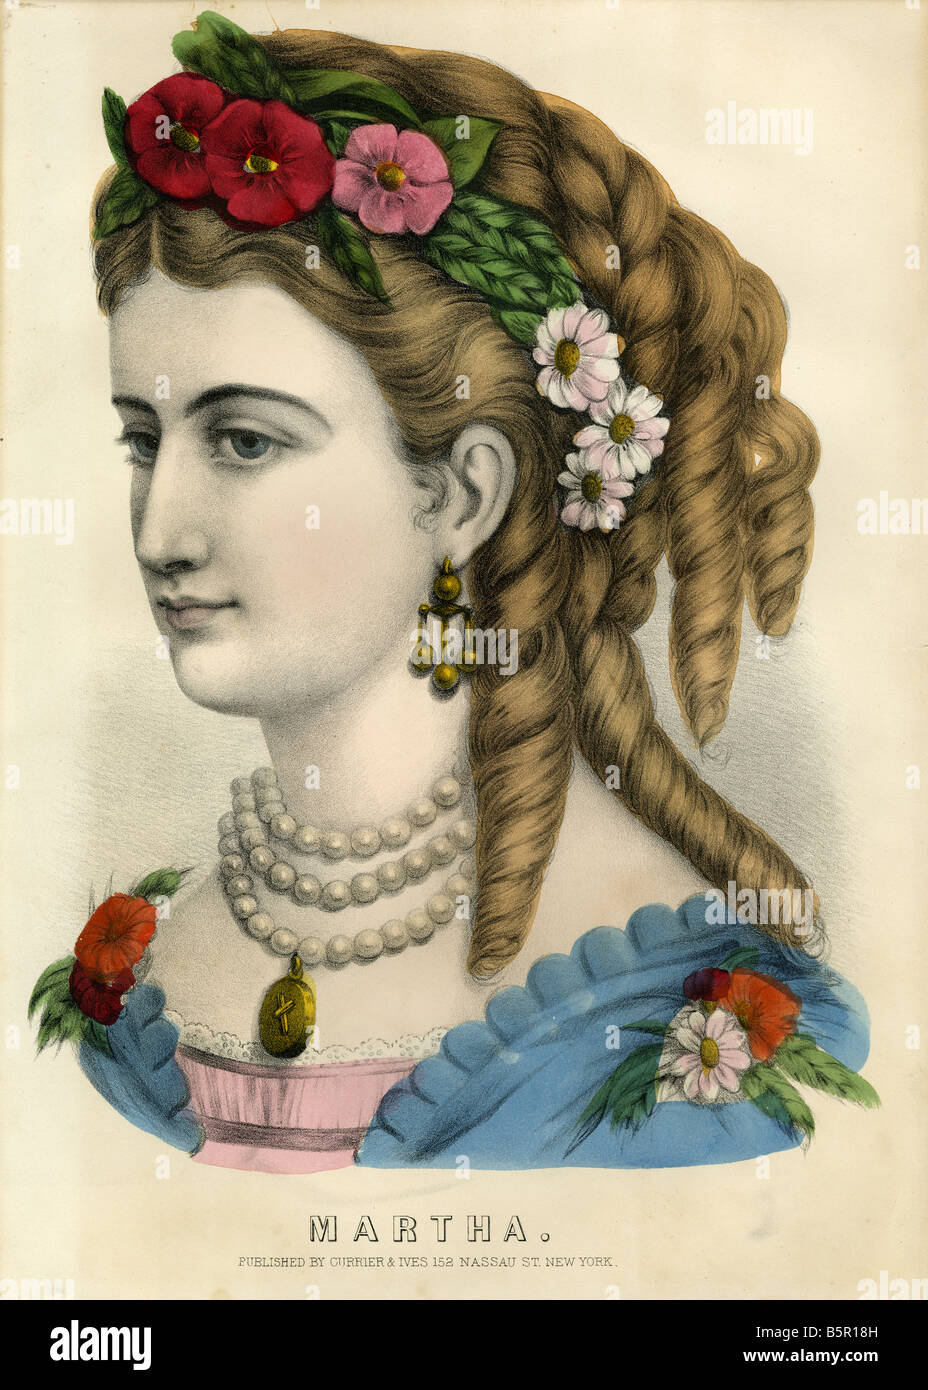 Circa 1840s to 1860s Currier & Ives hand colored lithograph of a woman named 'Martha.' - Stock Image